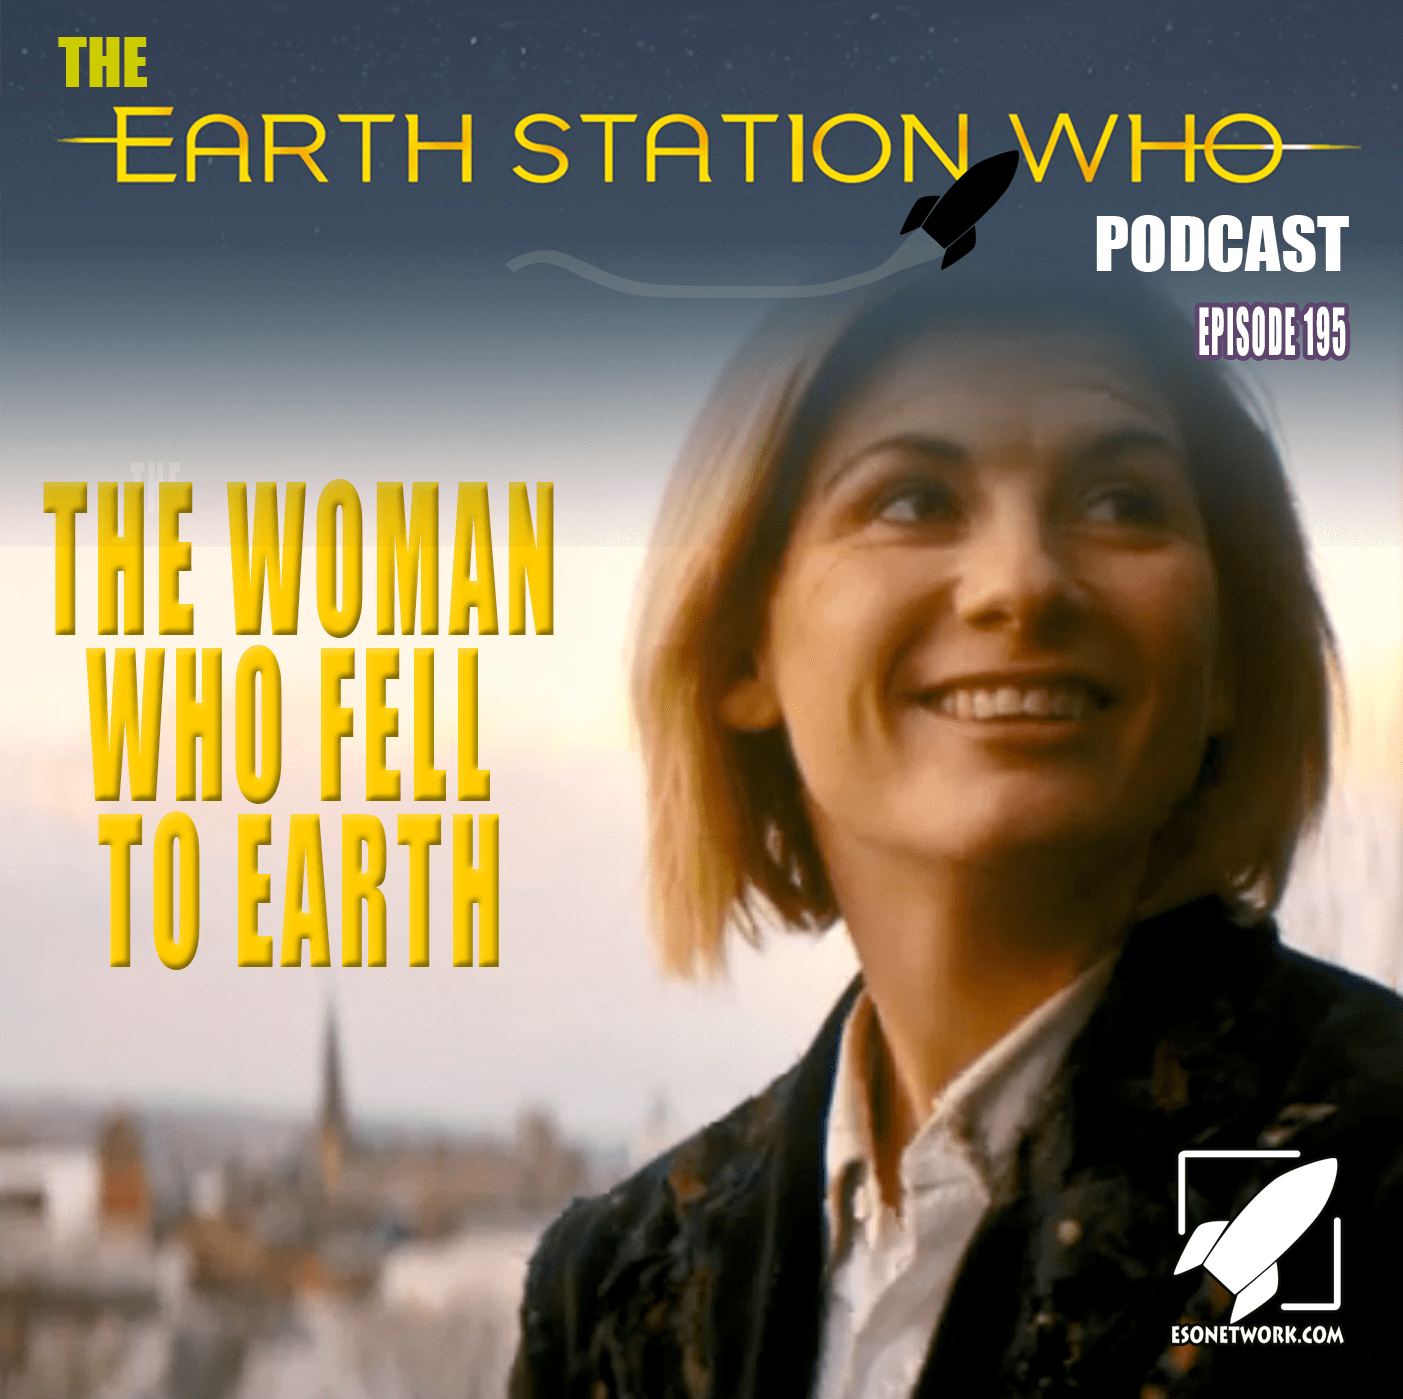 Earth Station Who Ep 195